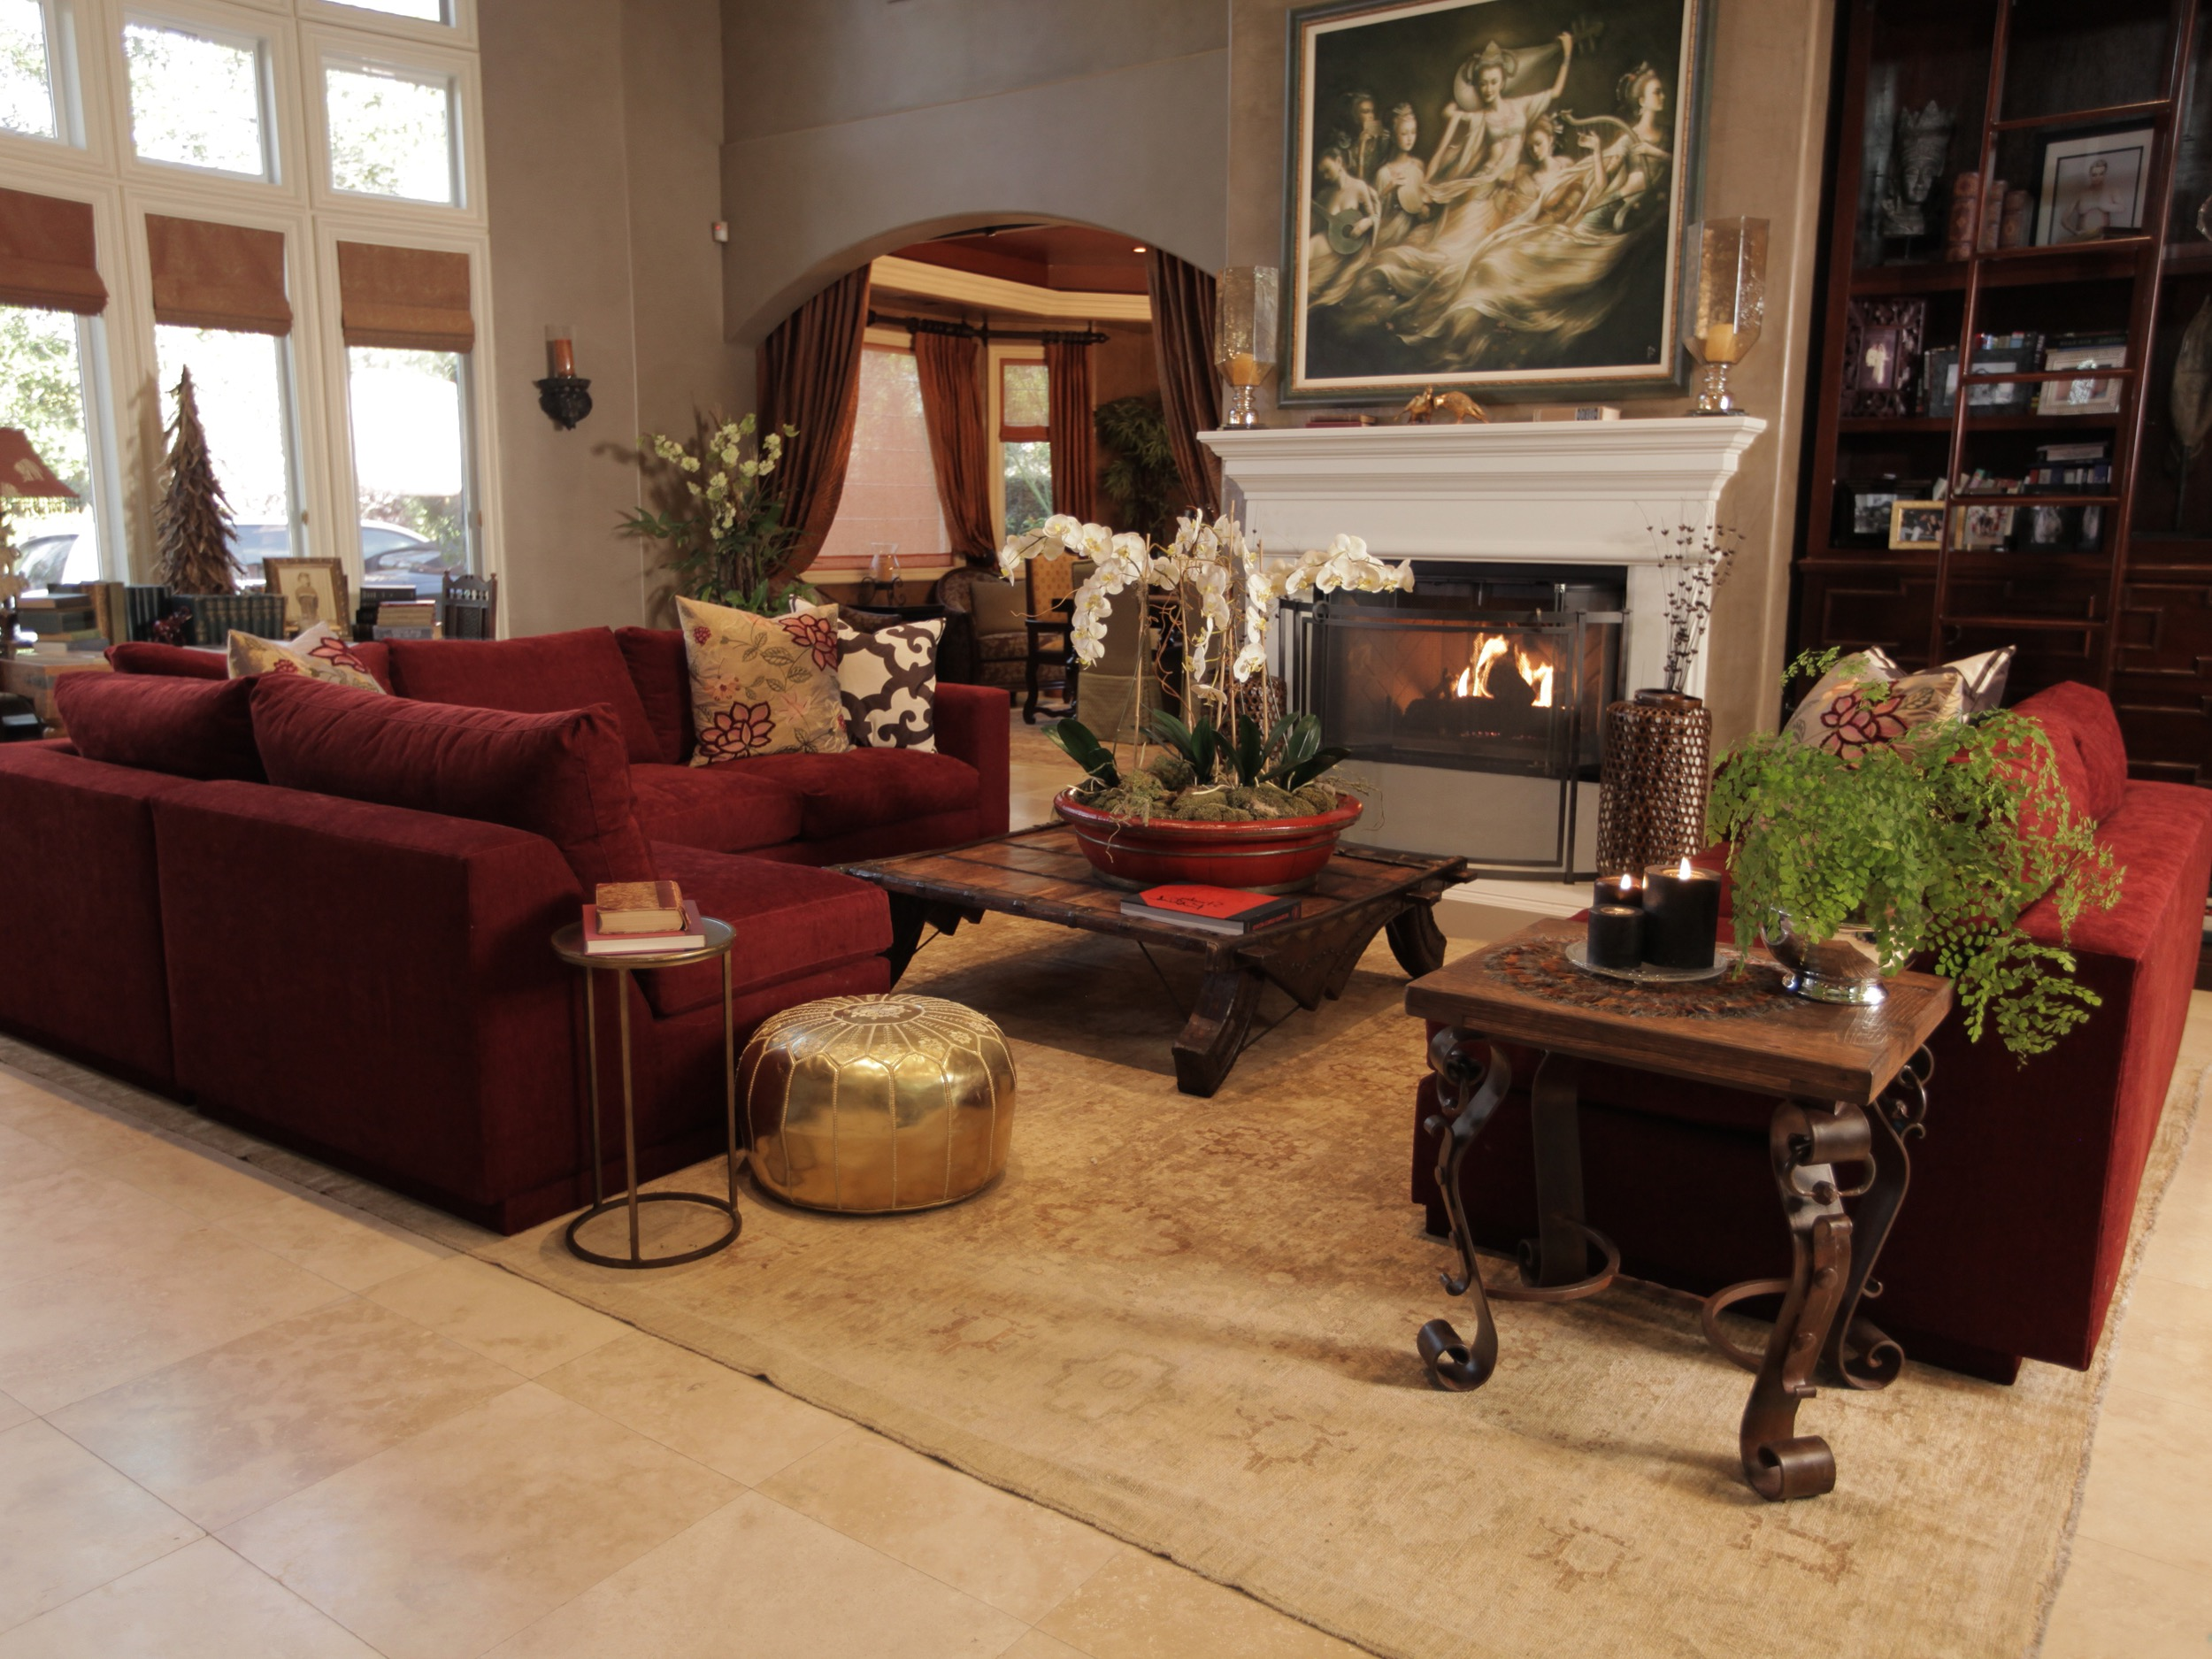 Moroccan Inspired Living Room Interior Decor #13543 Gallery (Photo 5 ...